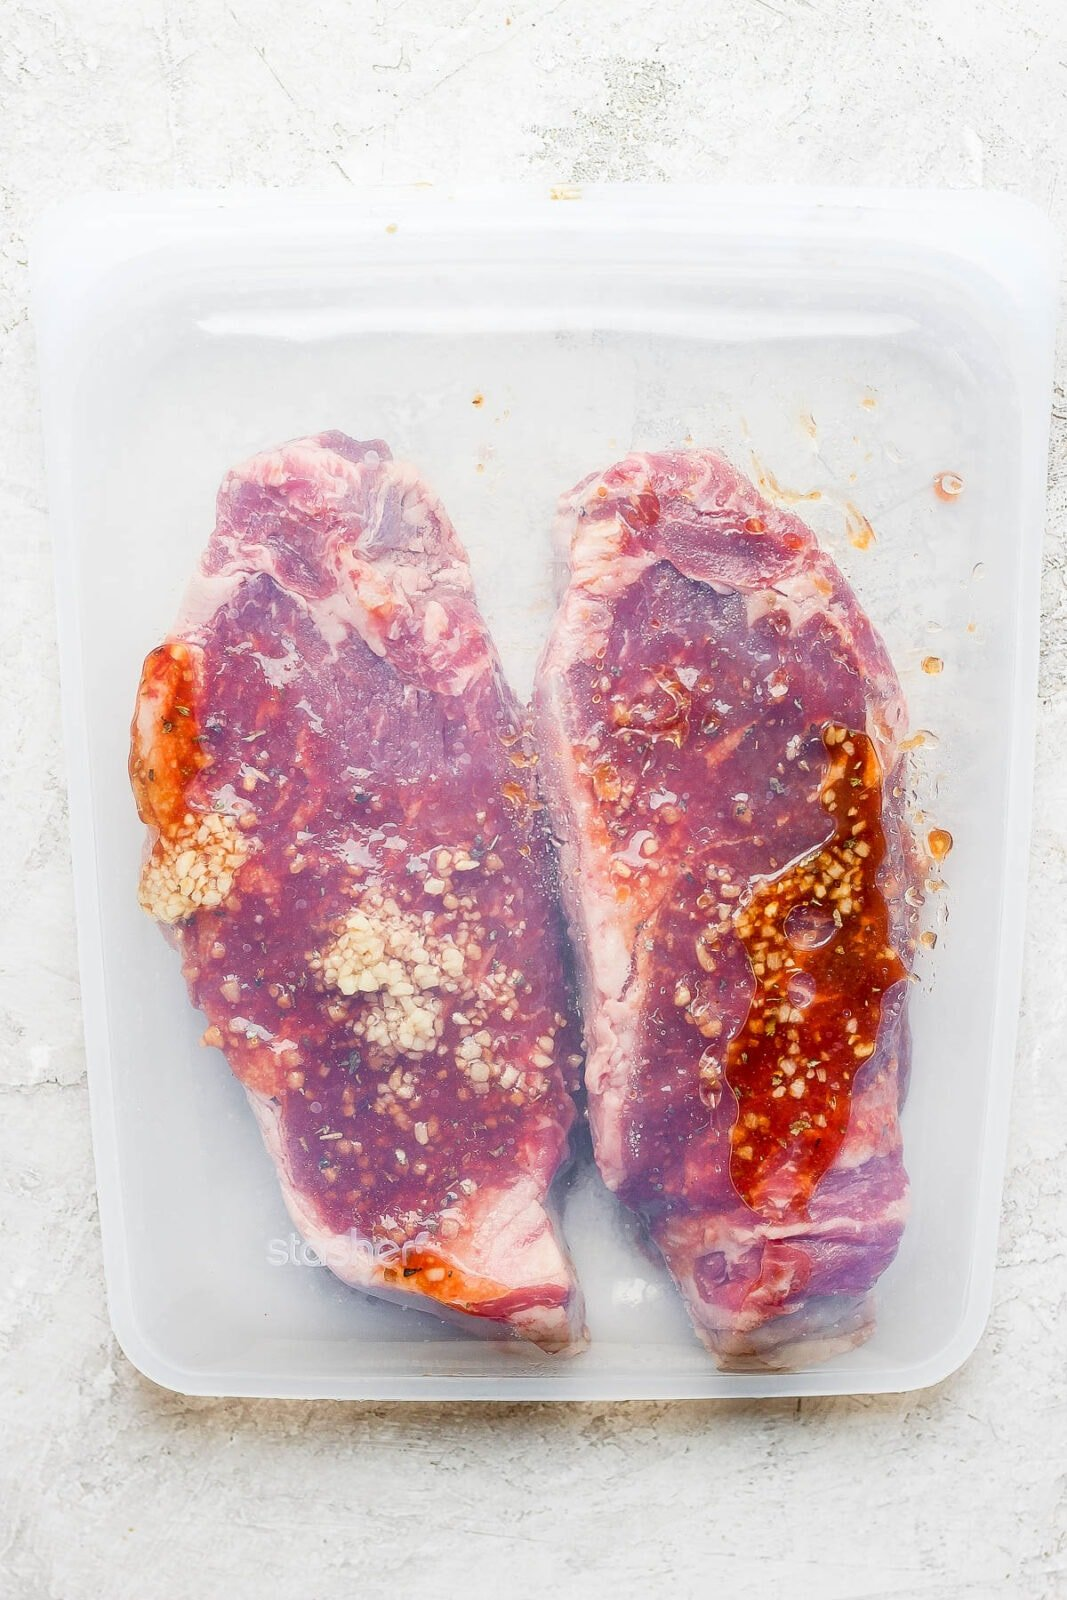 Two steaks in a stasher silicone bag with marinade inside.